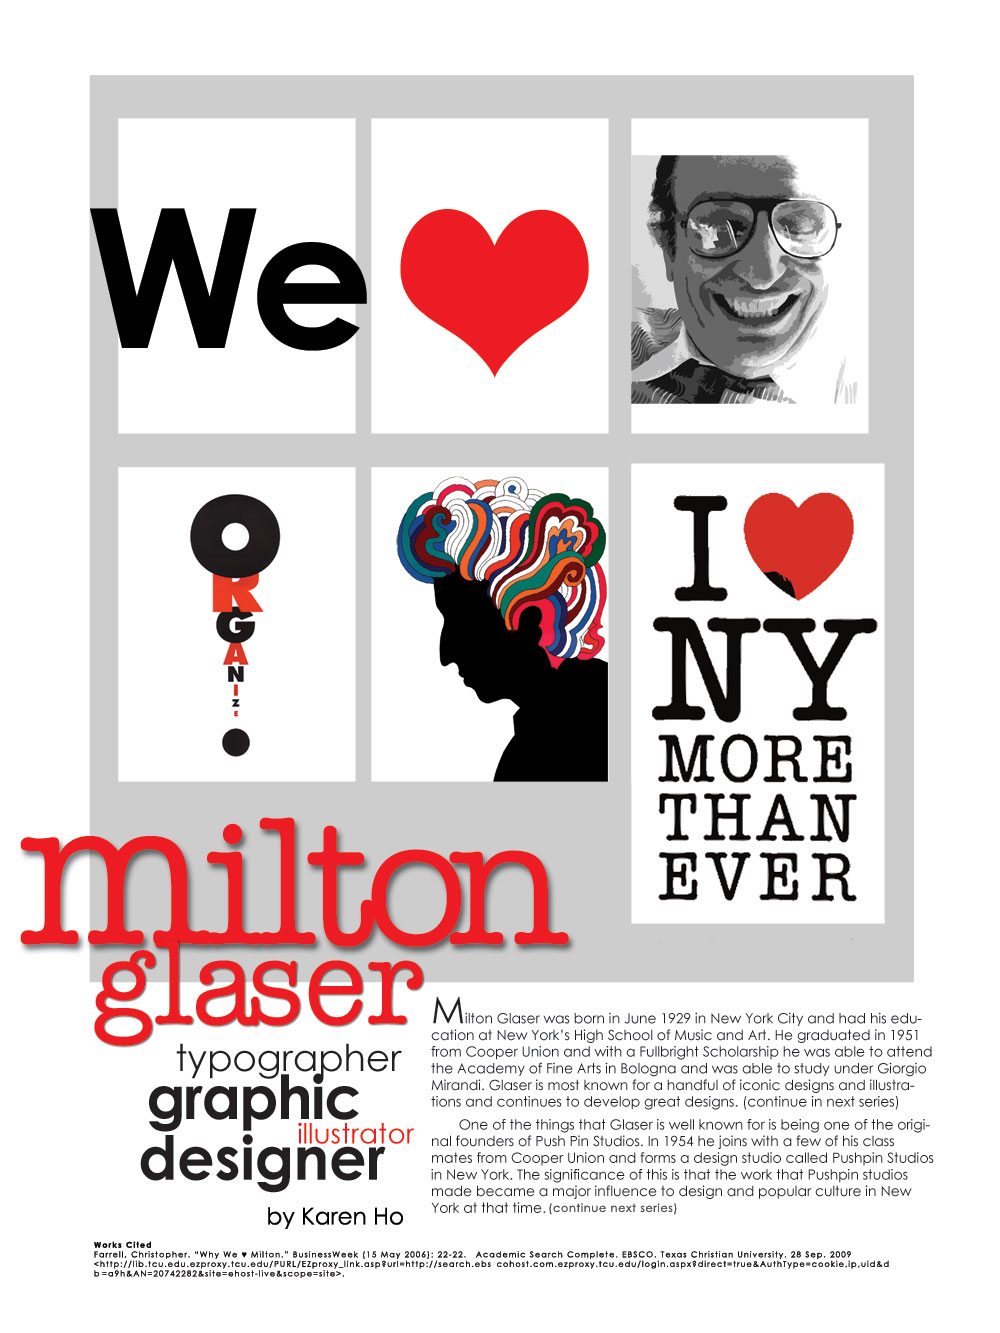 We_Love_Milton_Glaser_by_kernn